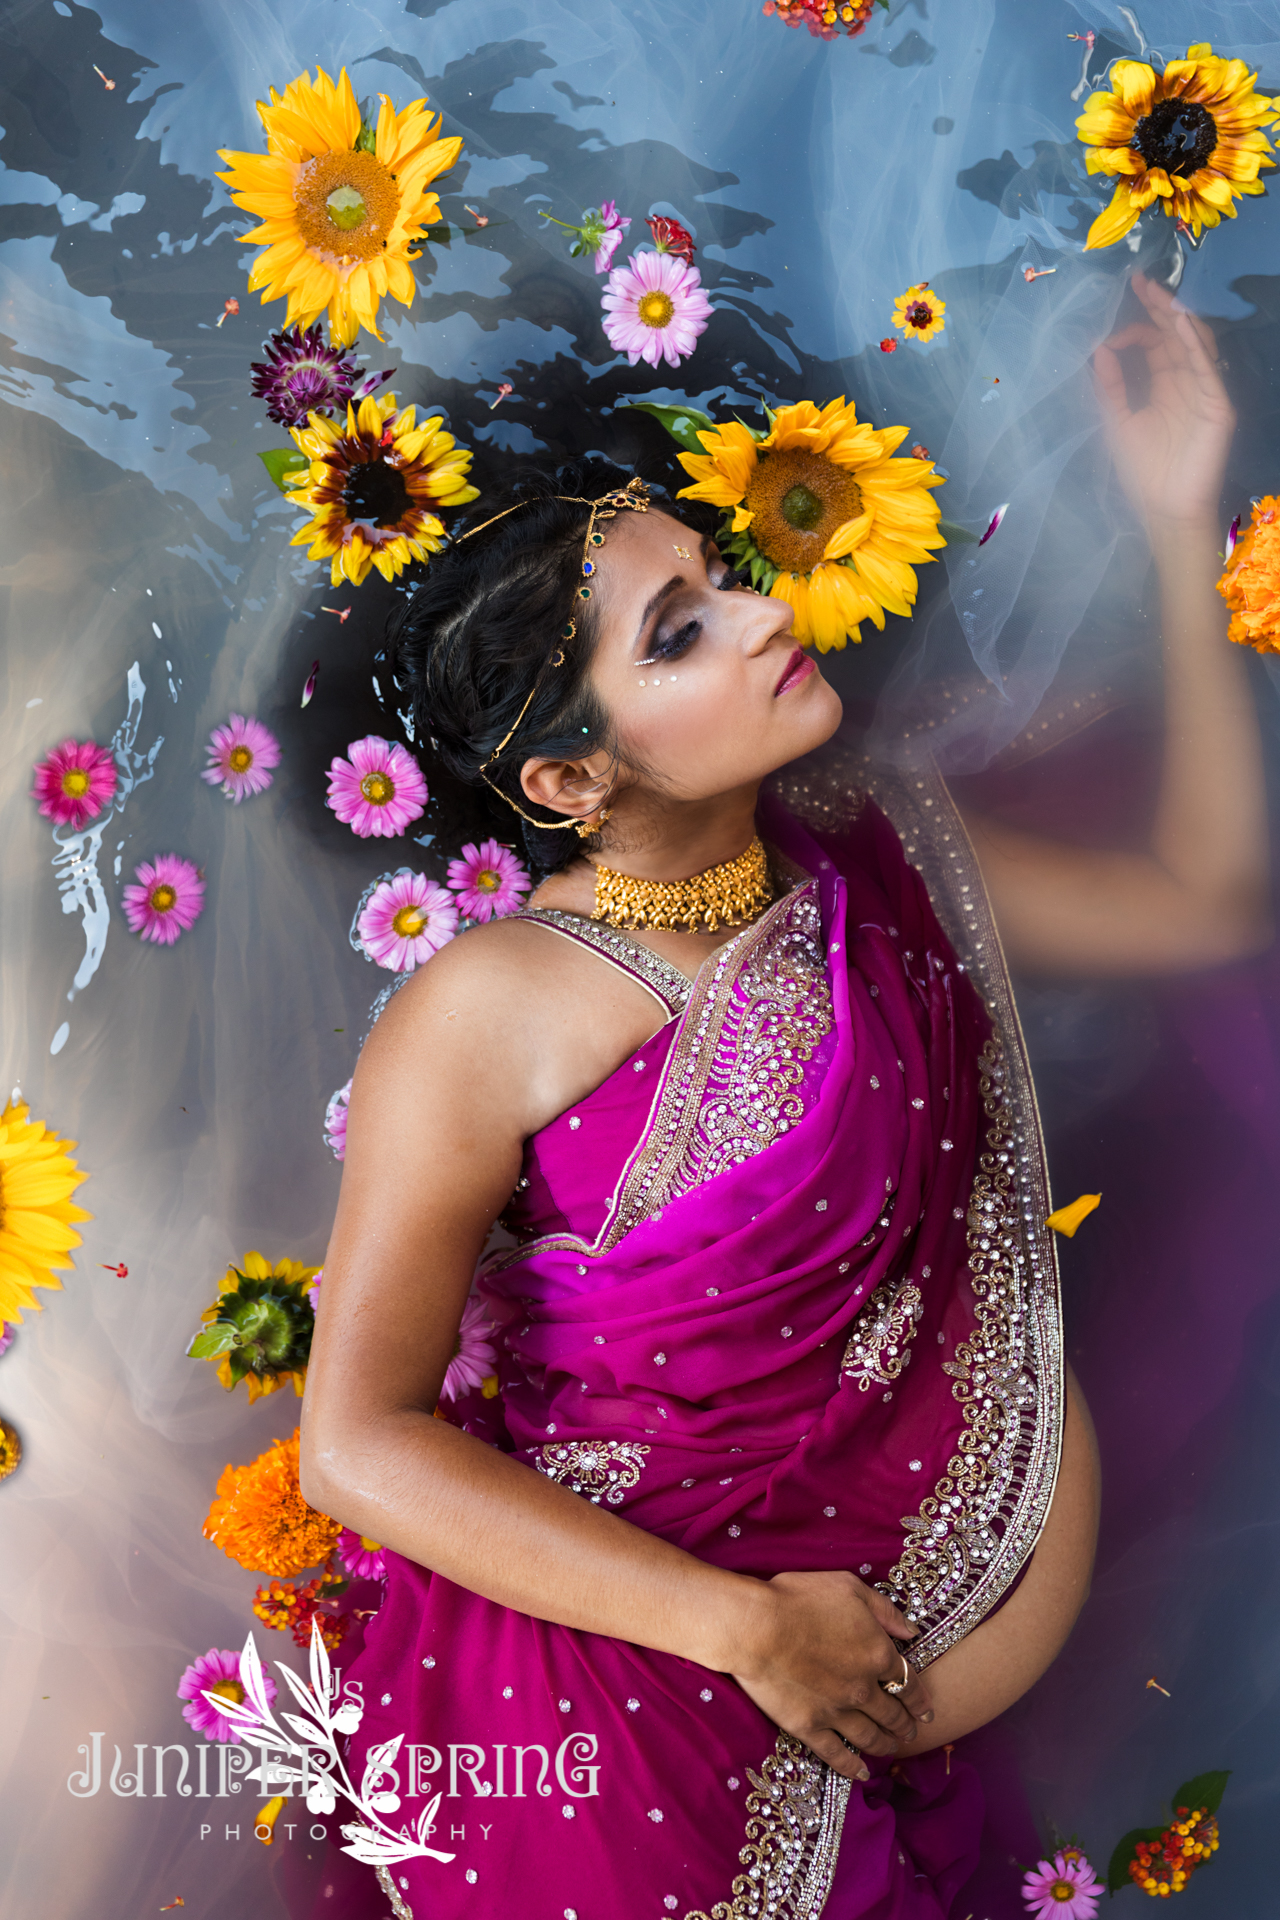 4bfe296d82f17 ... to do an Indian maternity shoot. It's an opportunity to push the  boundaries – you can only have photos you dream of if you make it happen in  reality.